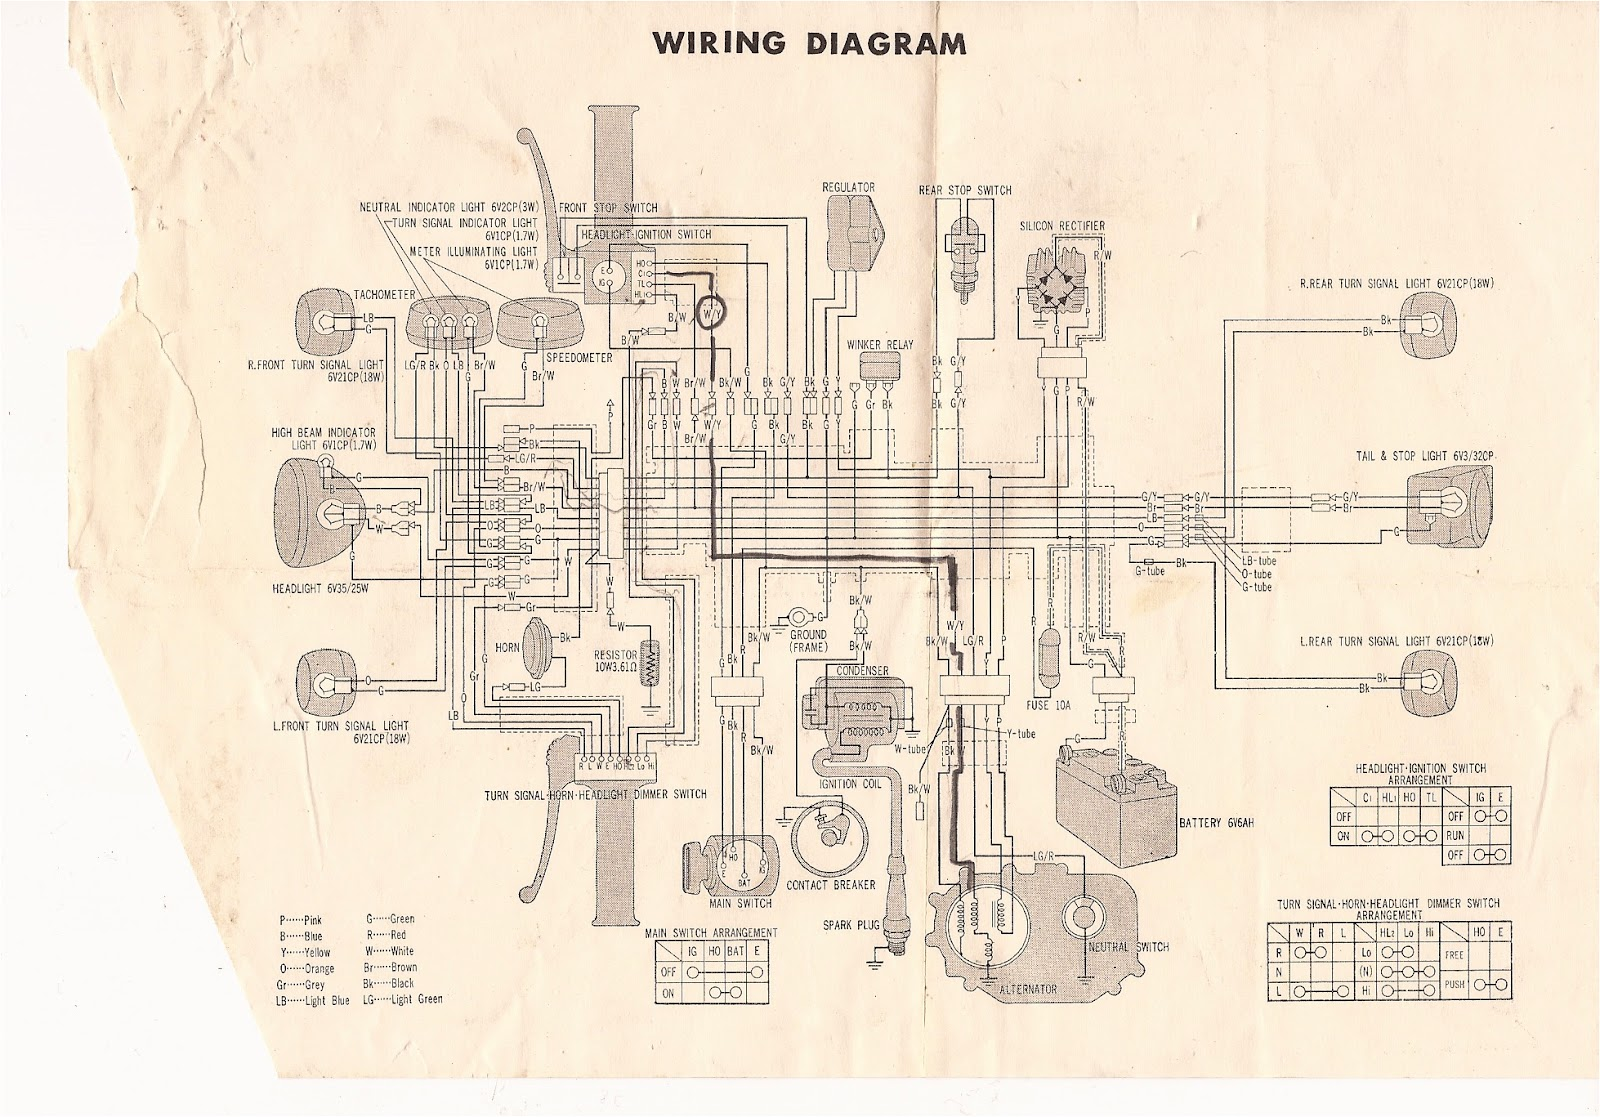 xl250 wiring diagram  xl250  get free image about wiring